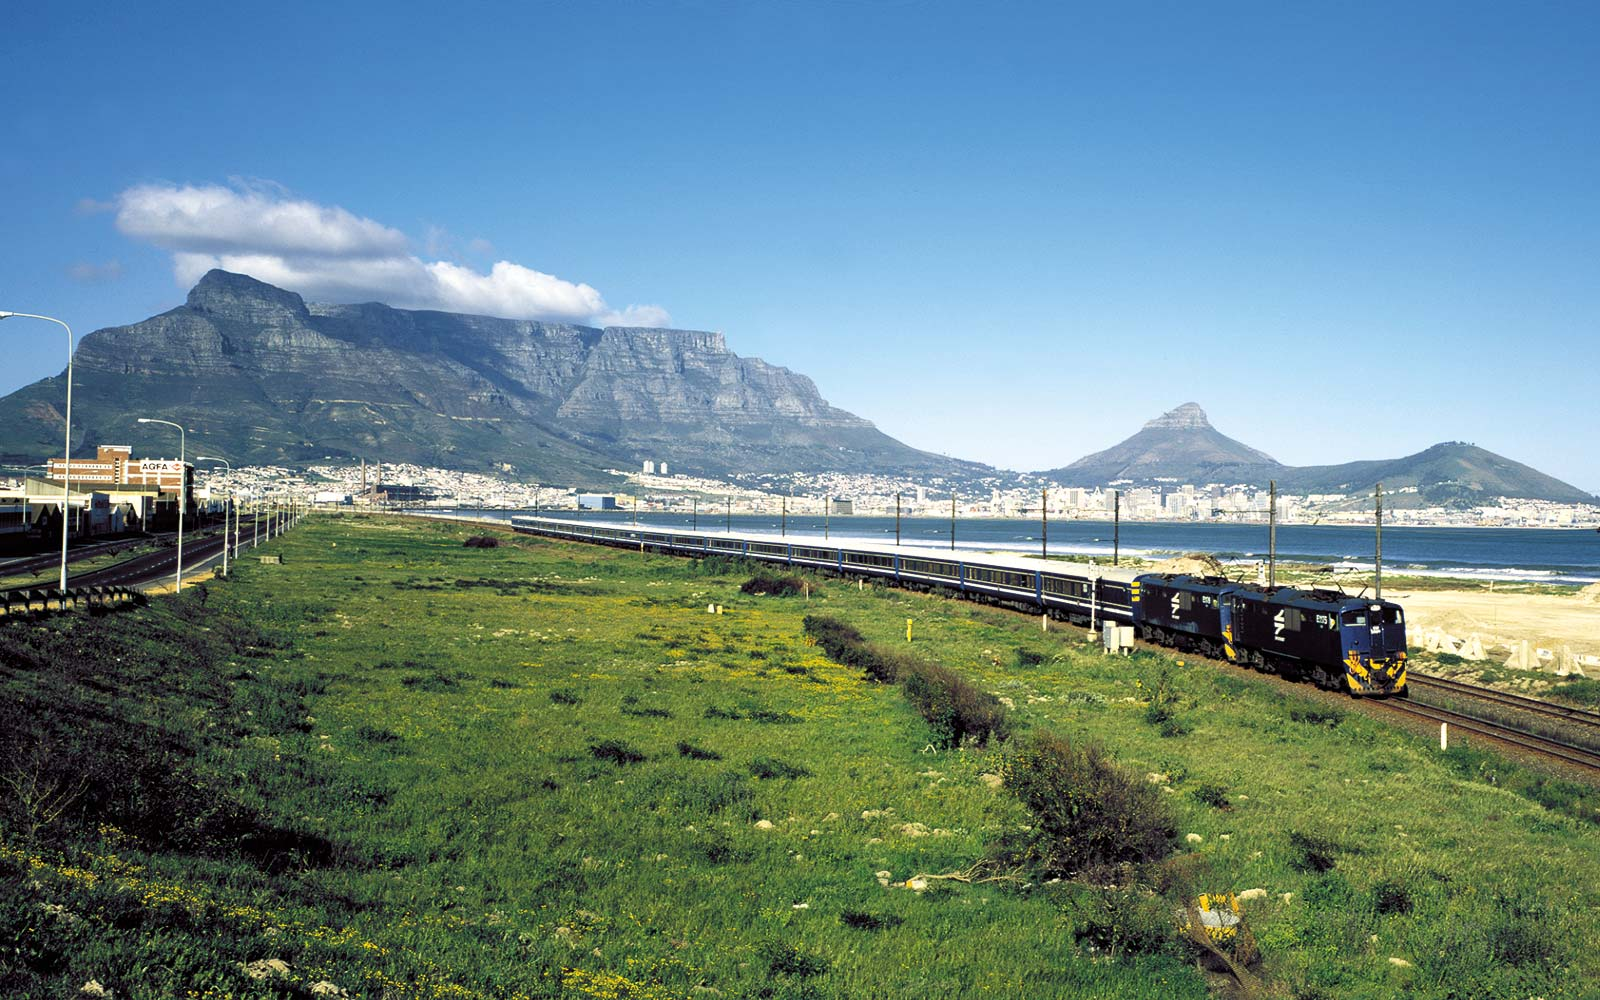 Why This 31-hour Train Journey Is One of the Best Ways to Discover South Africa